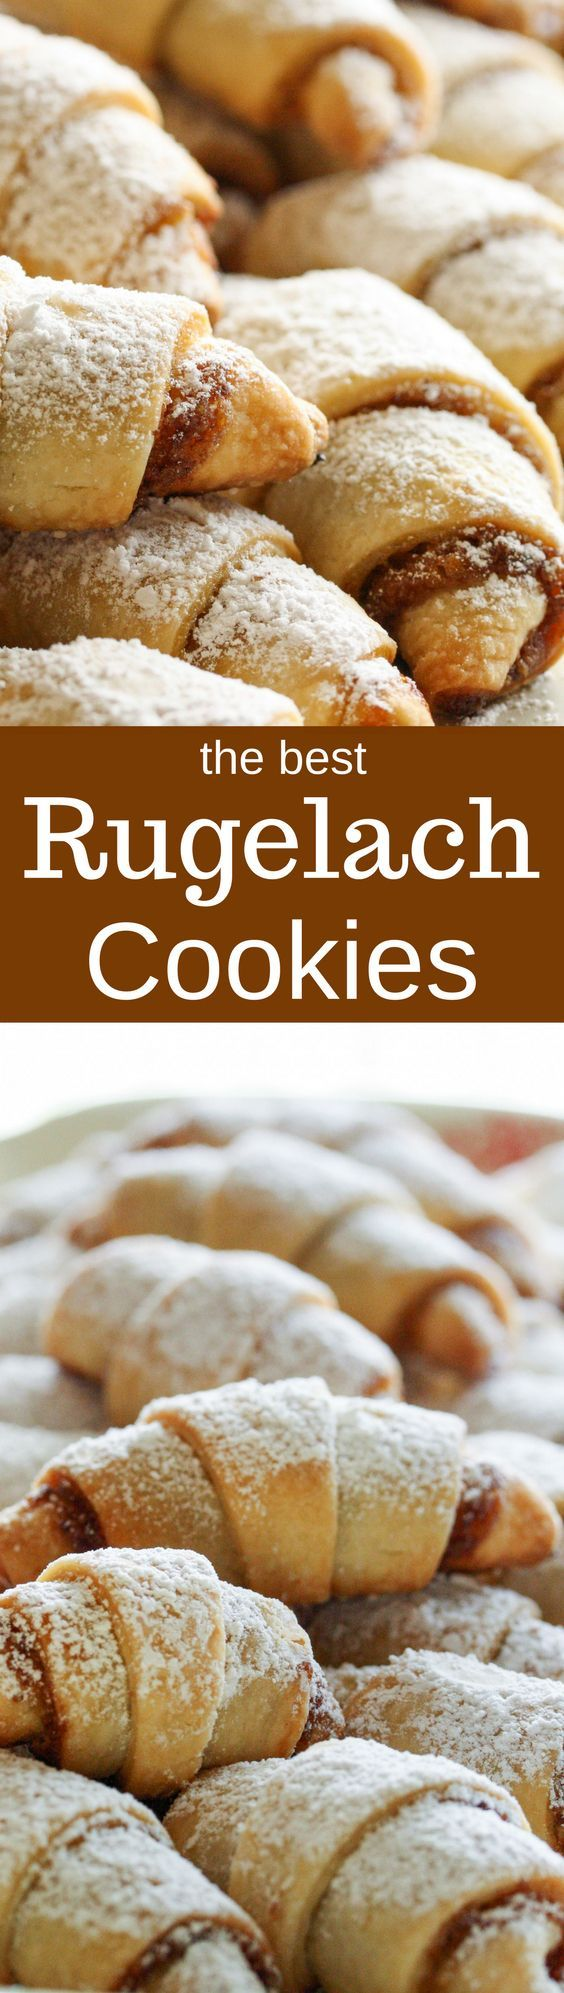 Rugelach Cookies - Cream cheese dough is rolled with sweet fillings such as preserves, nuts, chocolate, and/or raisins then dusted with powdered sugar - a holiday treat | www.savingdessert.com